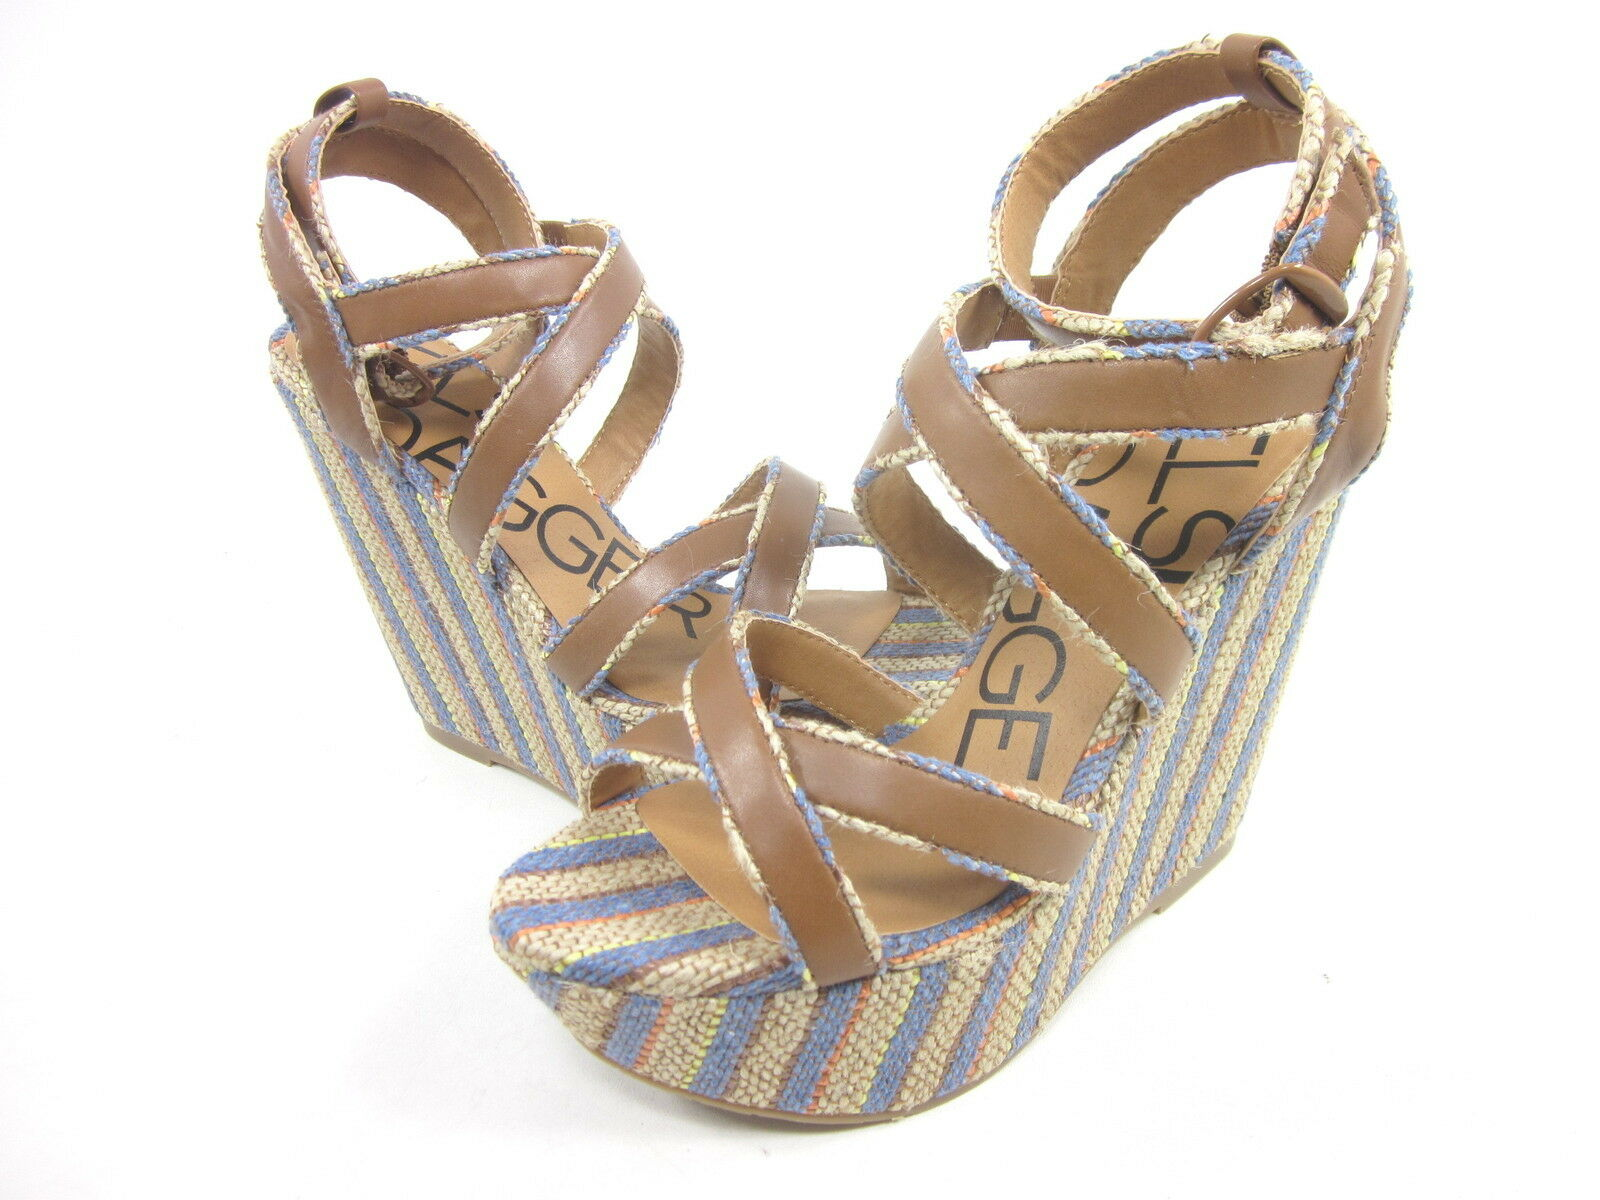 KELSI DAGGER, PAXTON WEDGE SANDAL, COBALT, Damenschuhe, US 10 M, BOX EURO 40, NEW IN BOX M, ea04bc